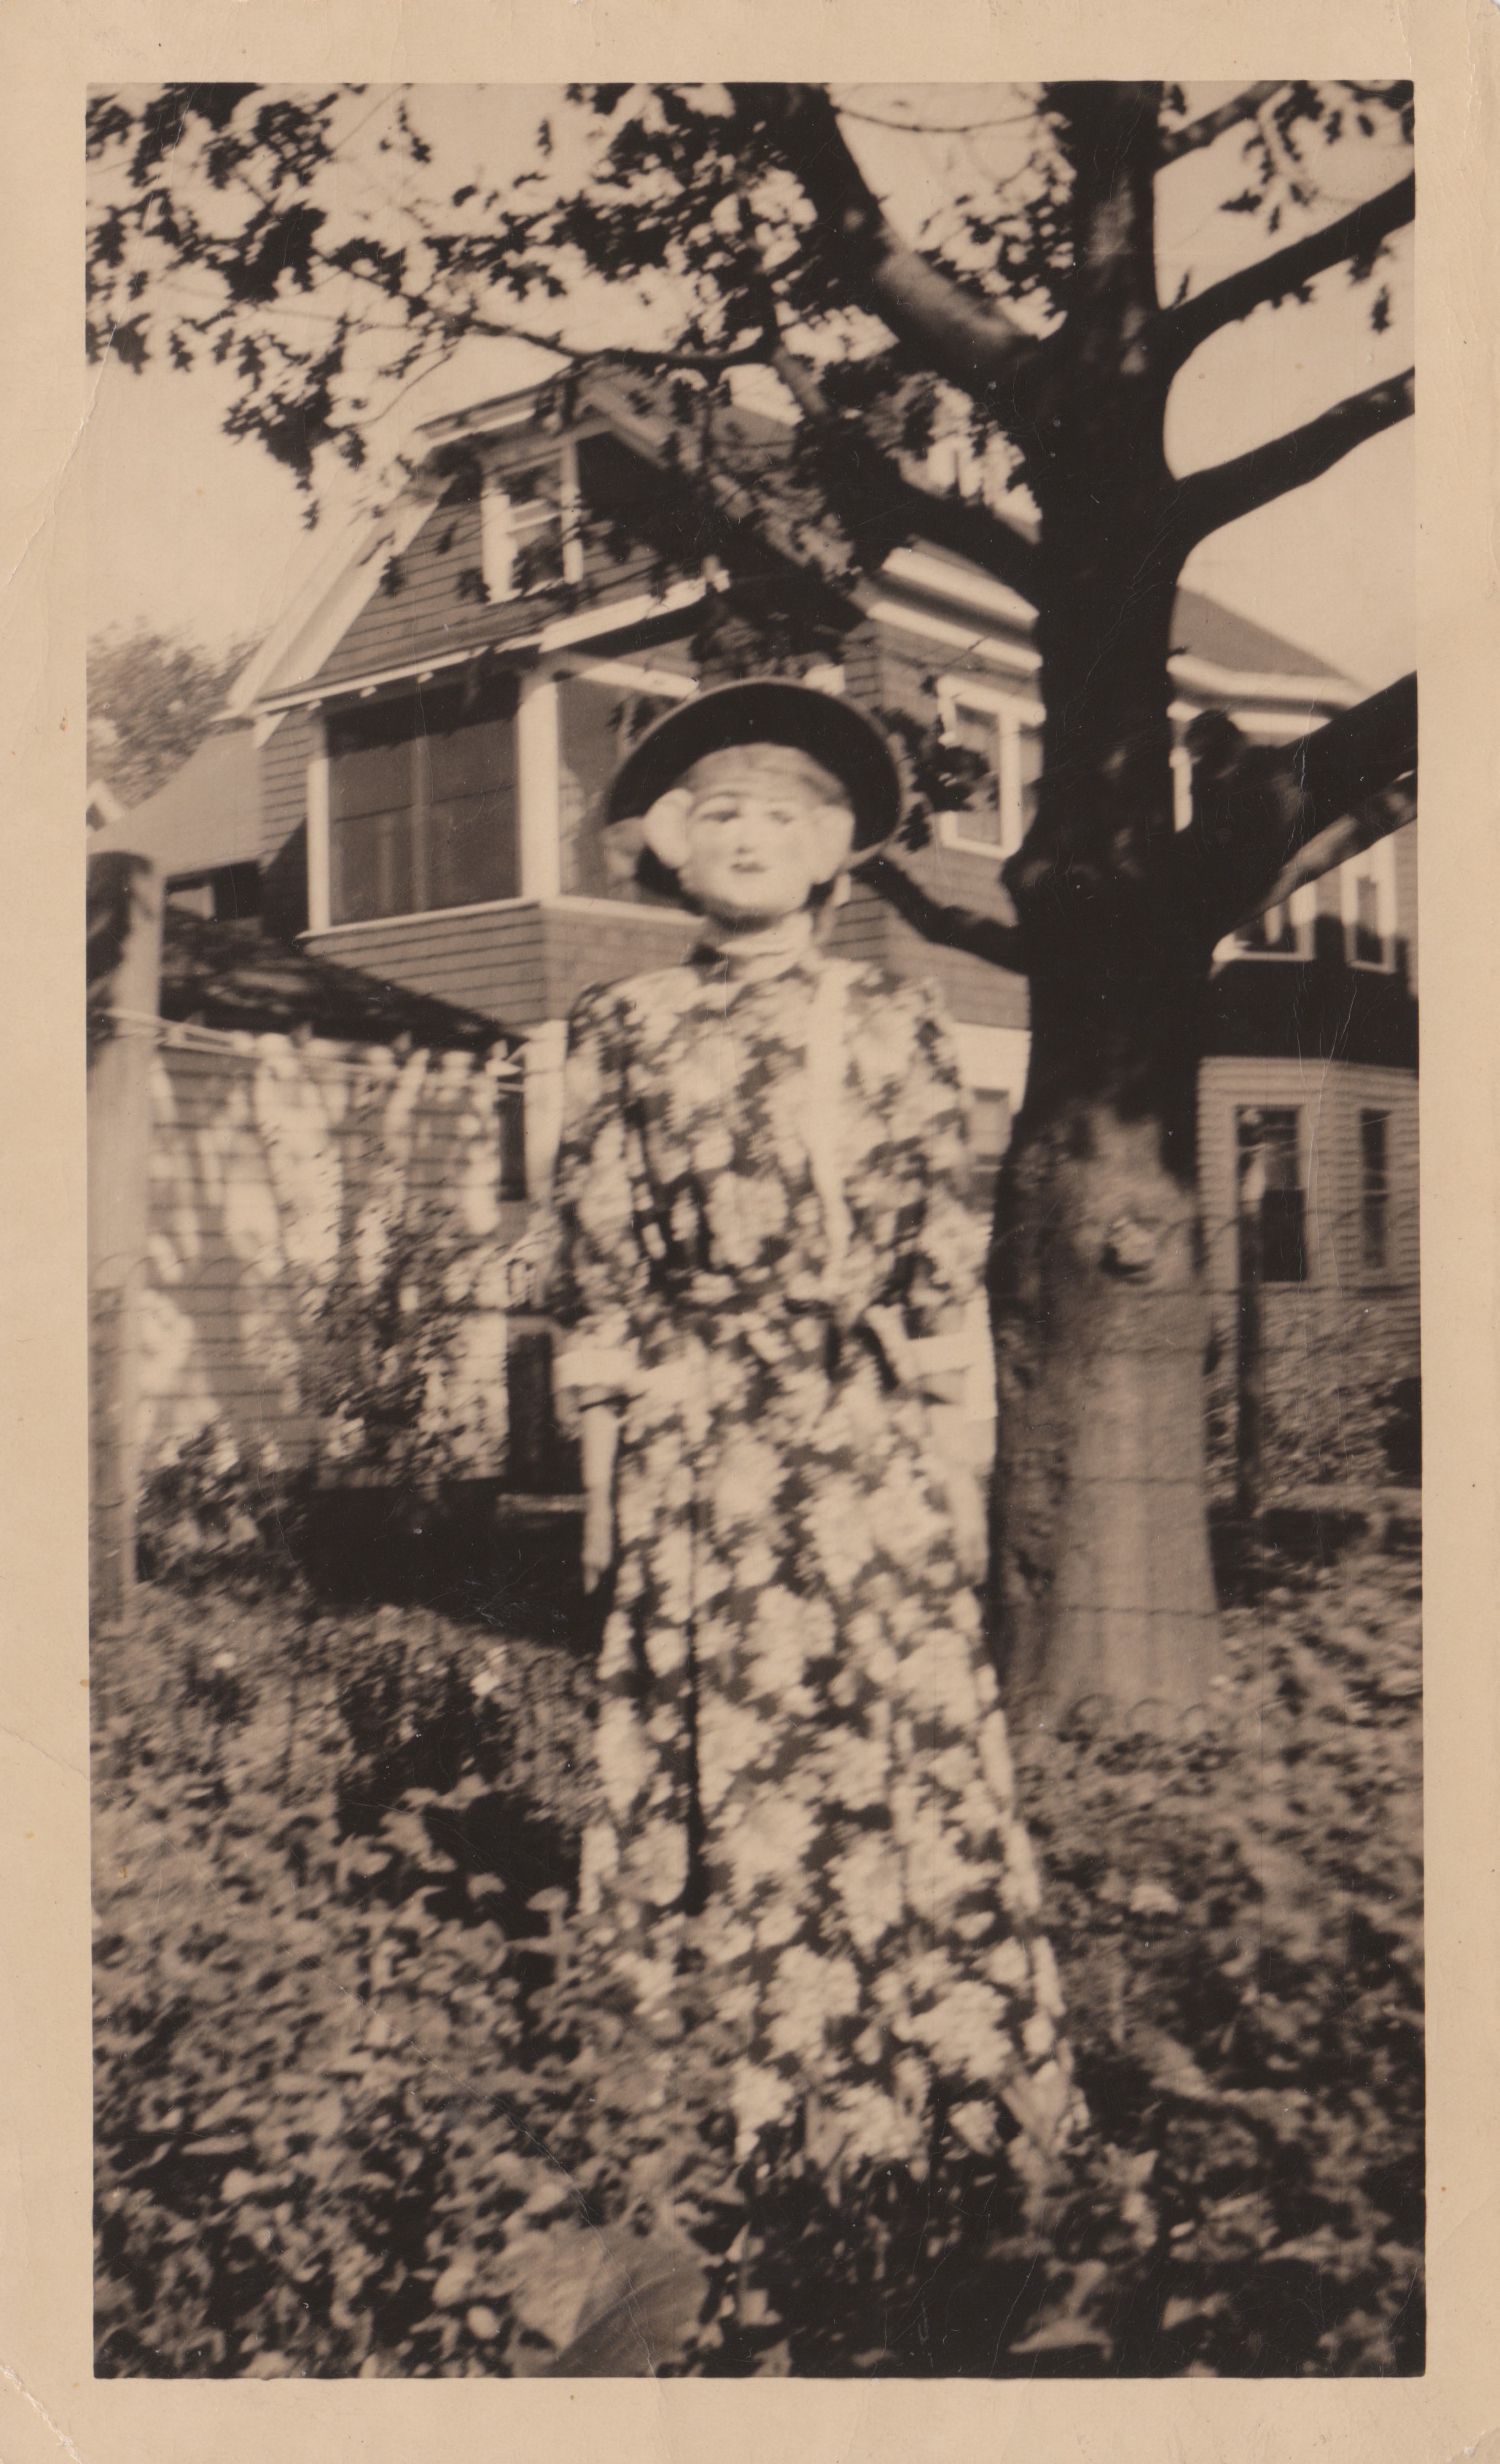 Halloween snapshots vintage photos